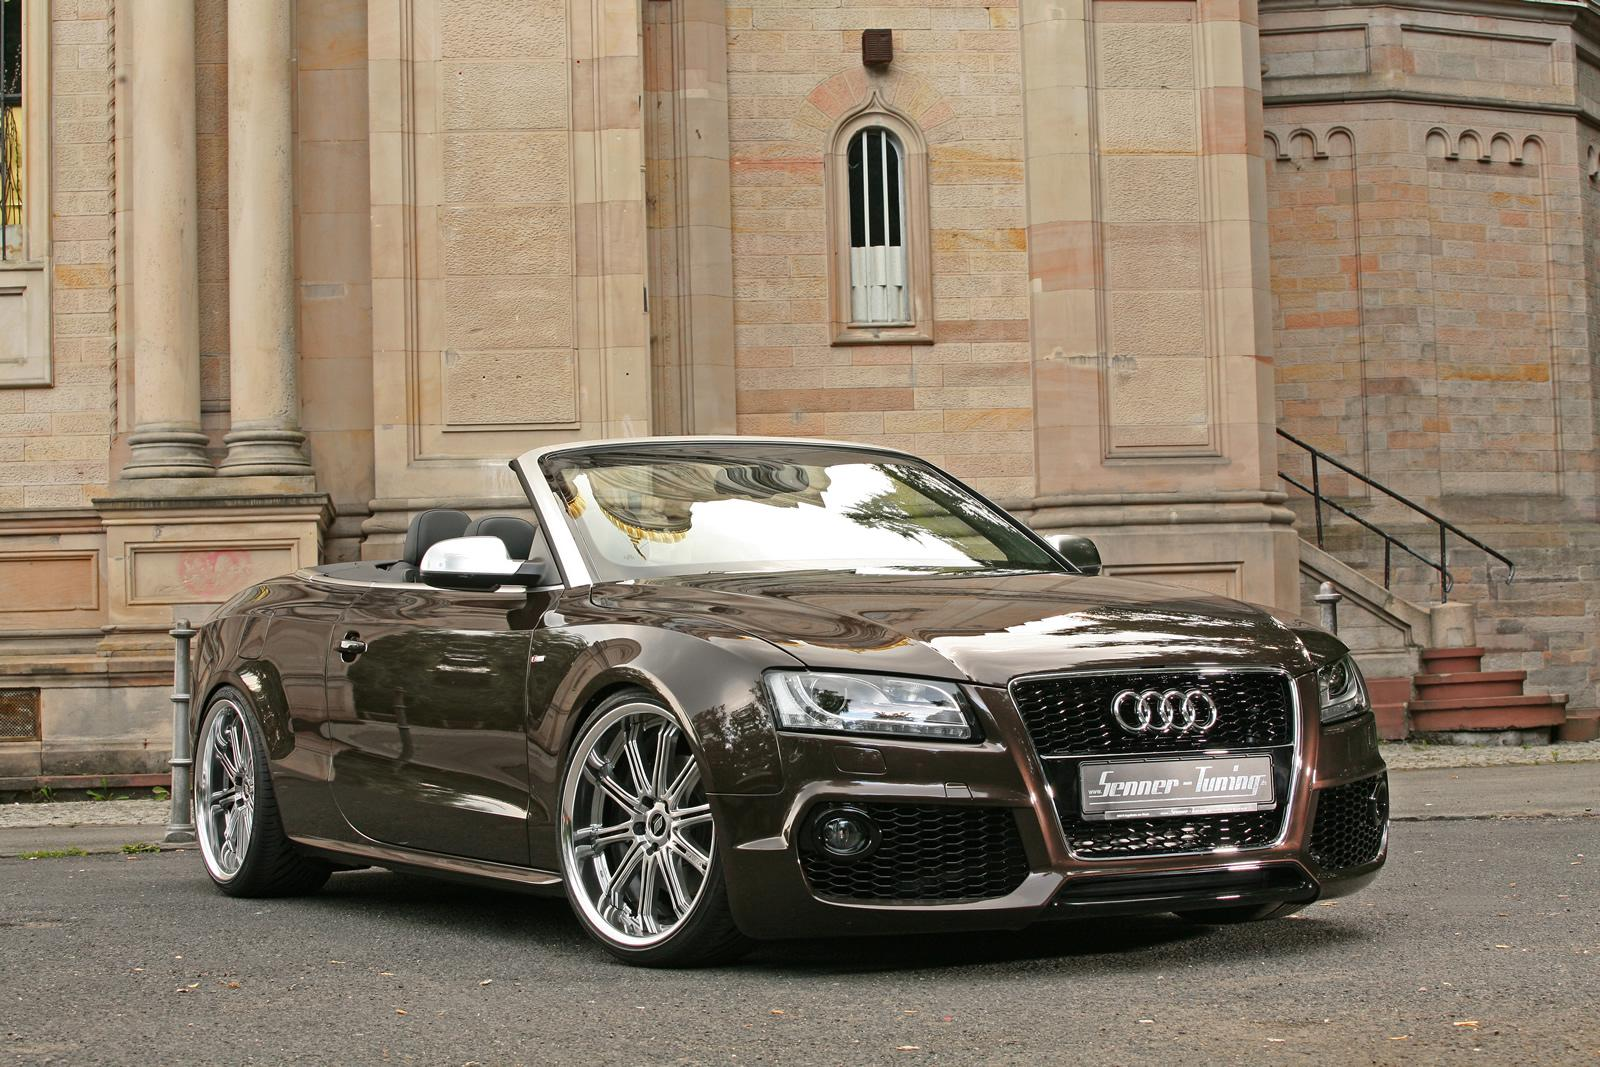 2010 audi a5 cabrio senner tuning picture 41550 rh automobilesreview com